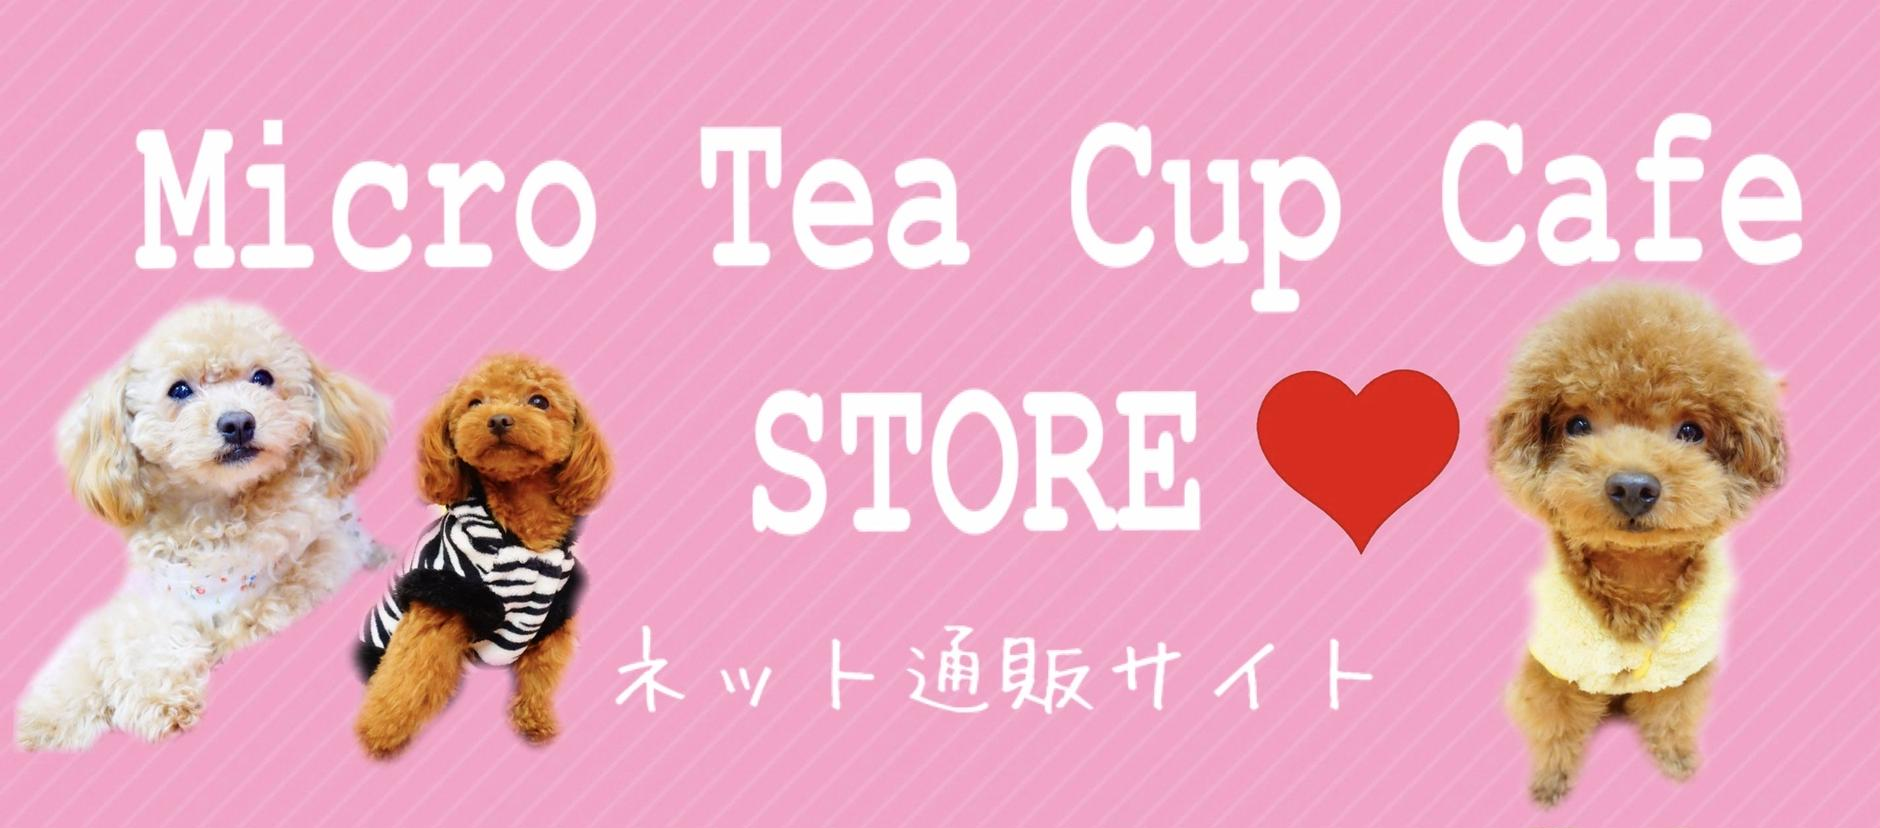 Micro Tea Cup Cafe STORE